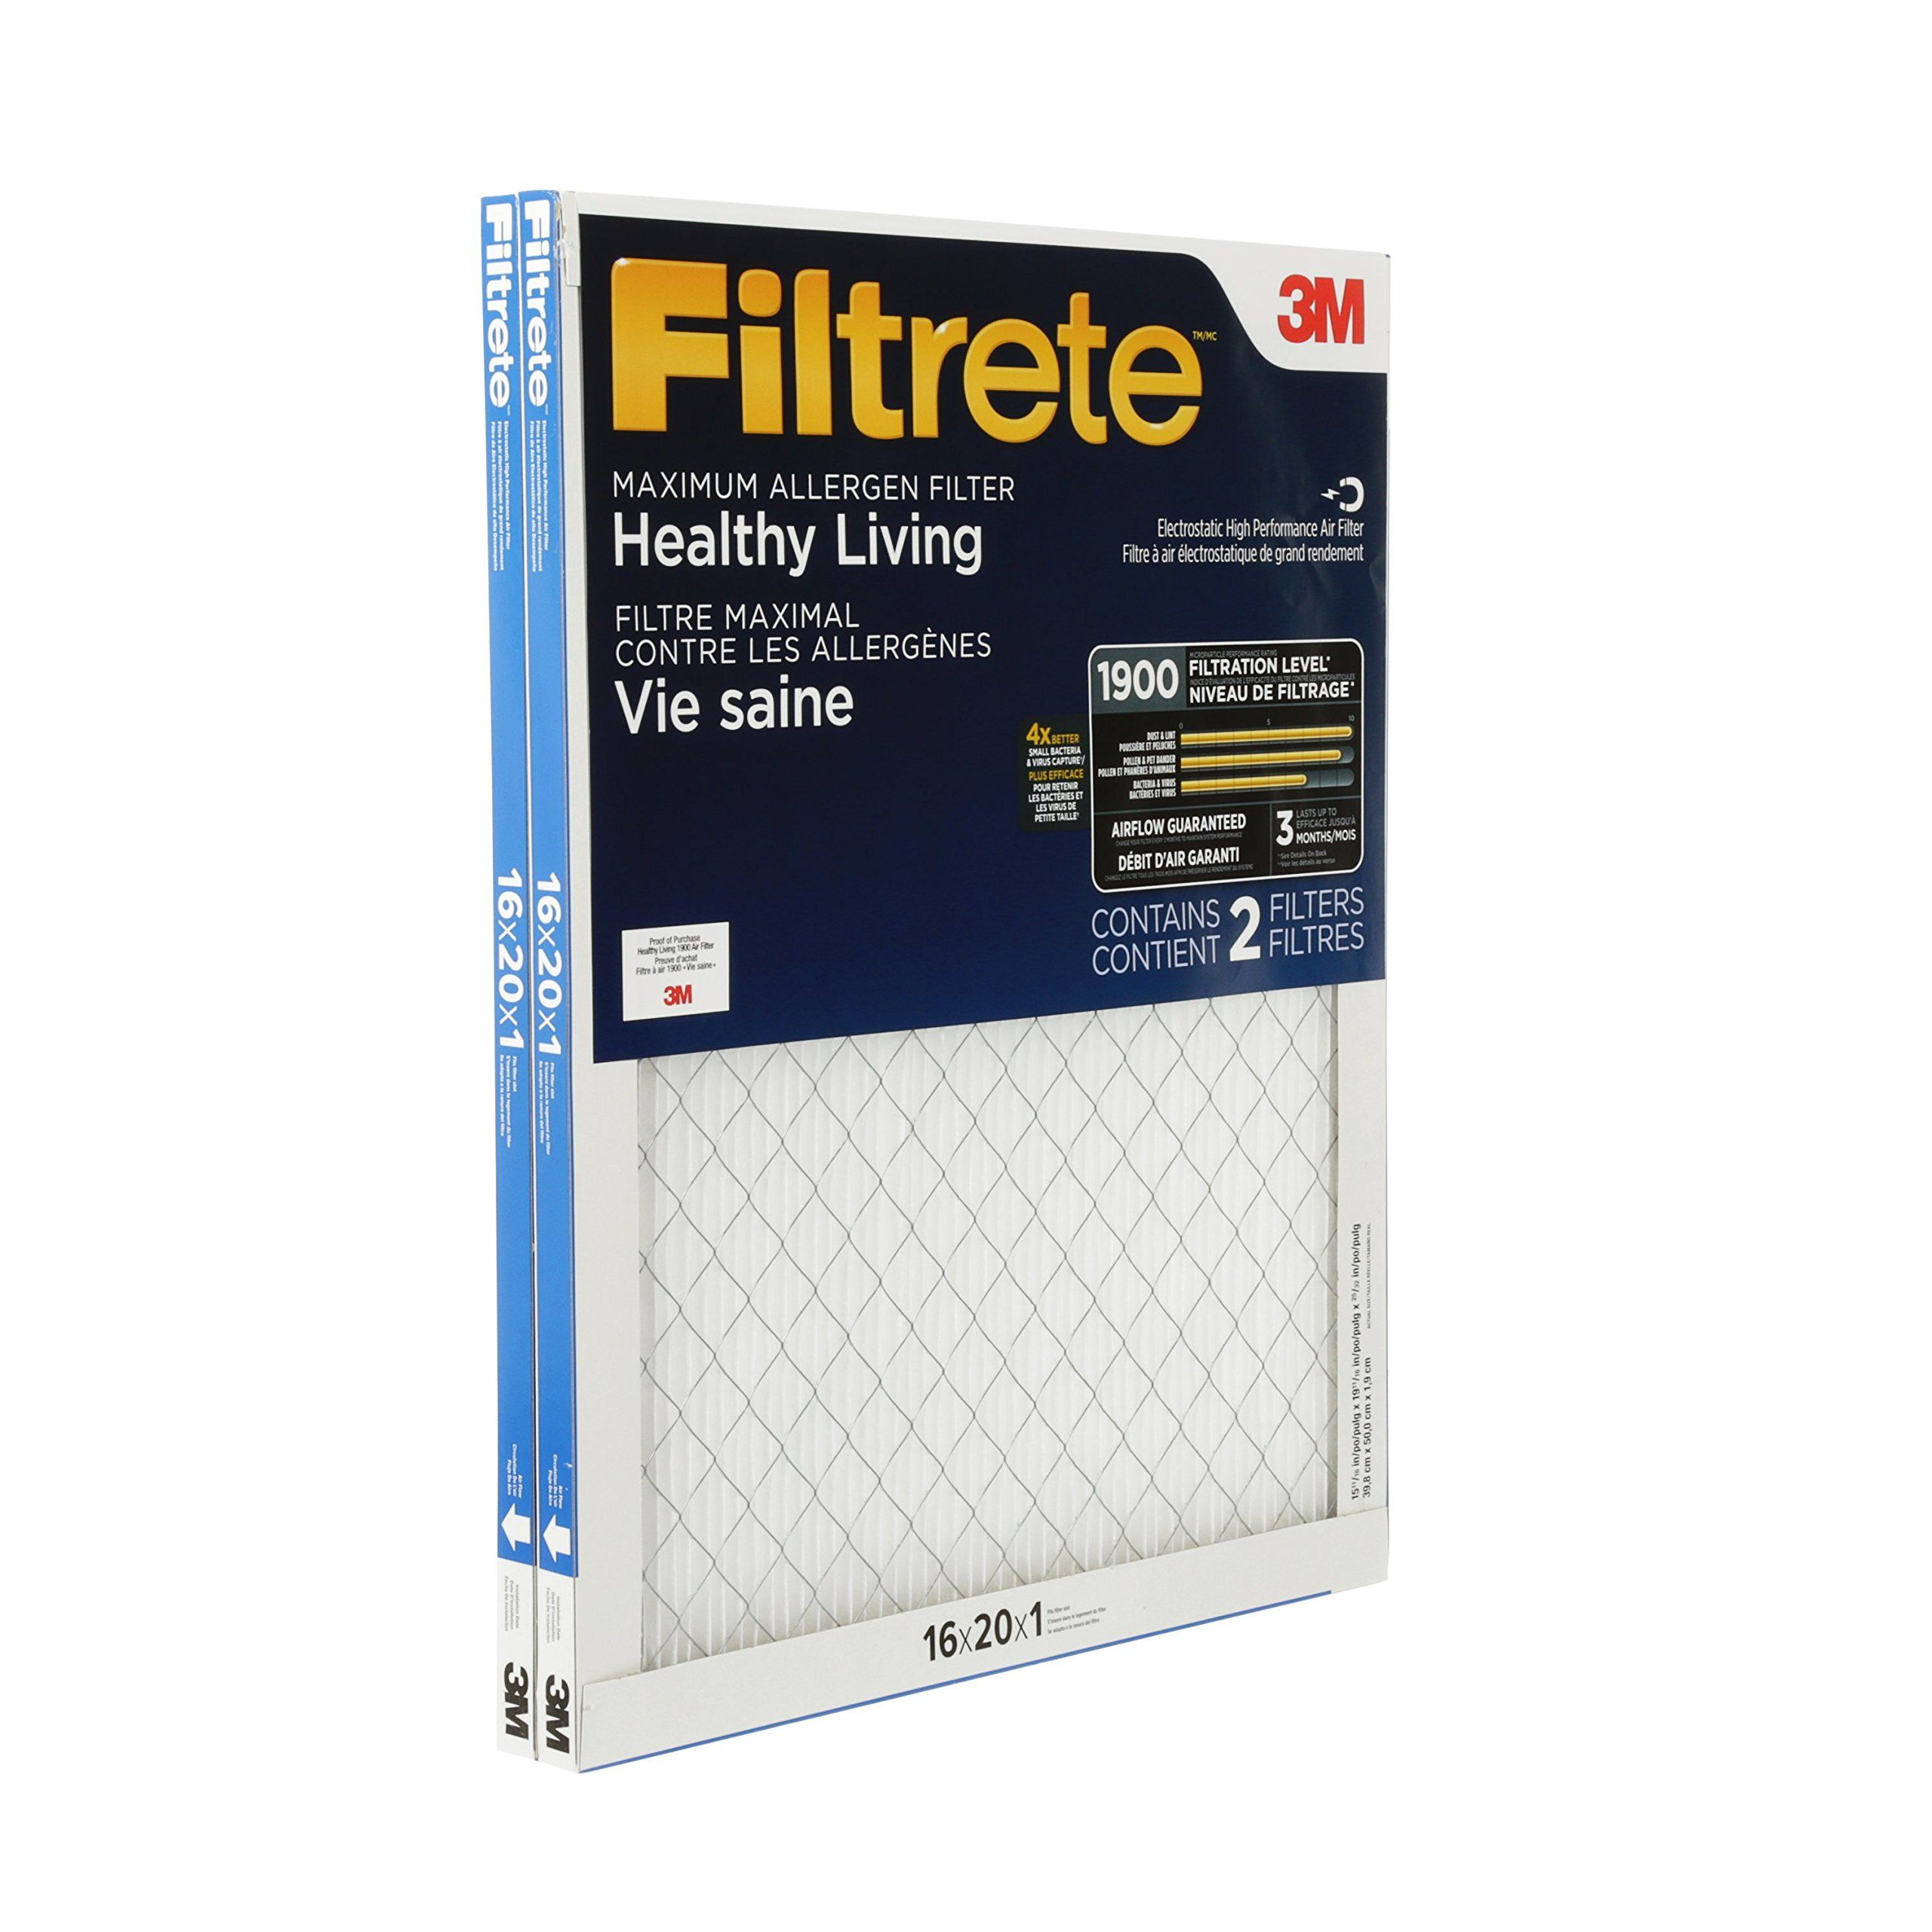 Filtrete MPR 1900 16 x 20 x 1 Healthy Living Ultimate